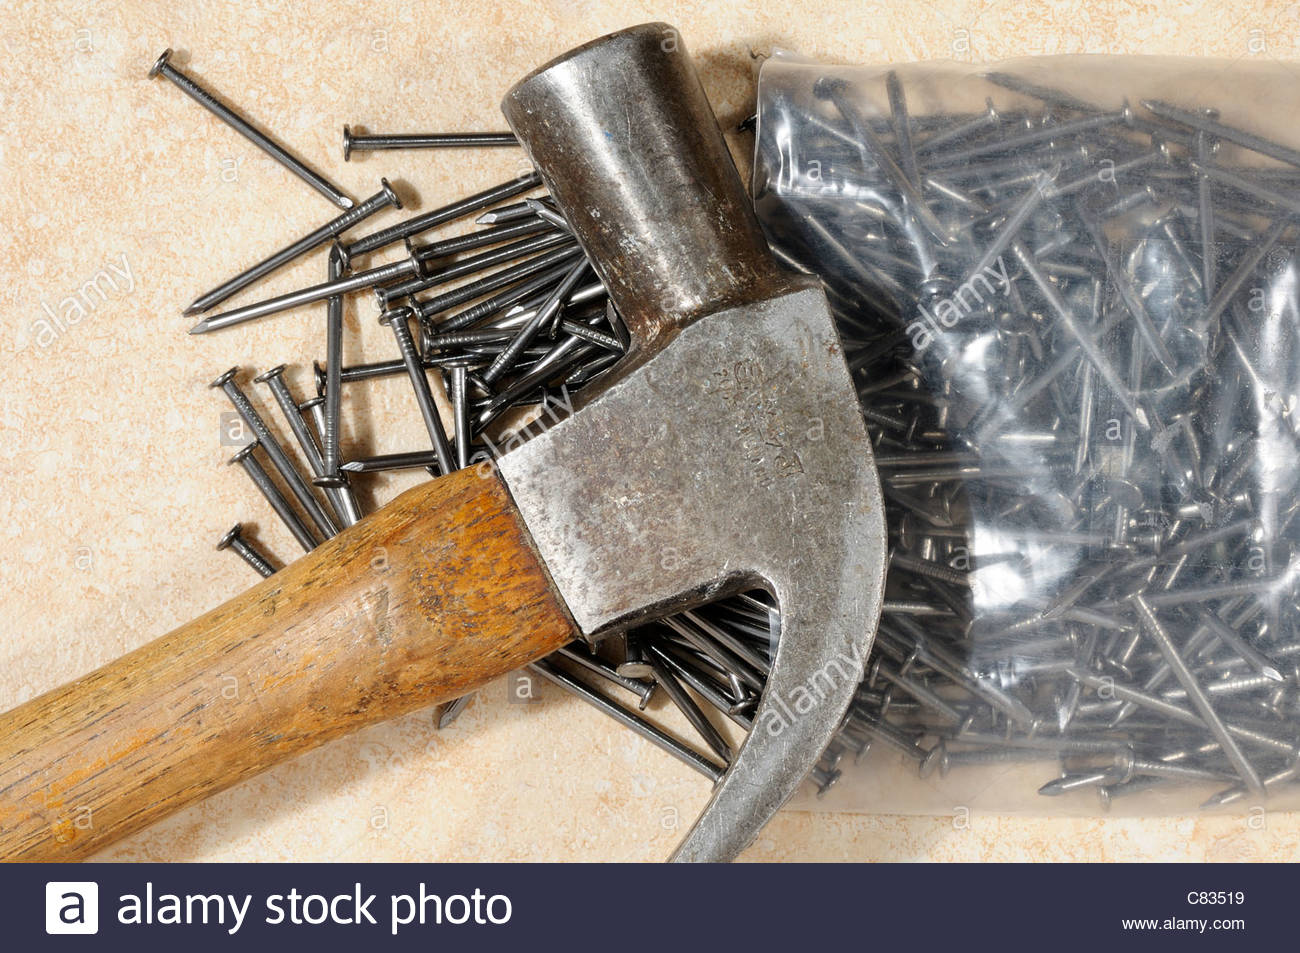 Claw hammer and nails, DIY tools, England - Stock Image